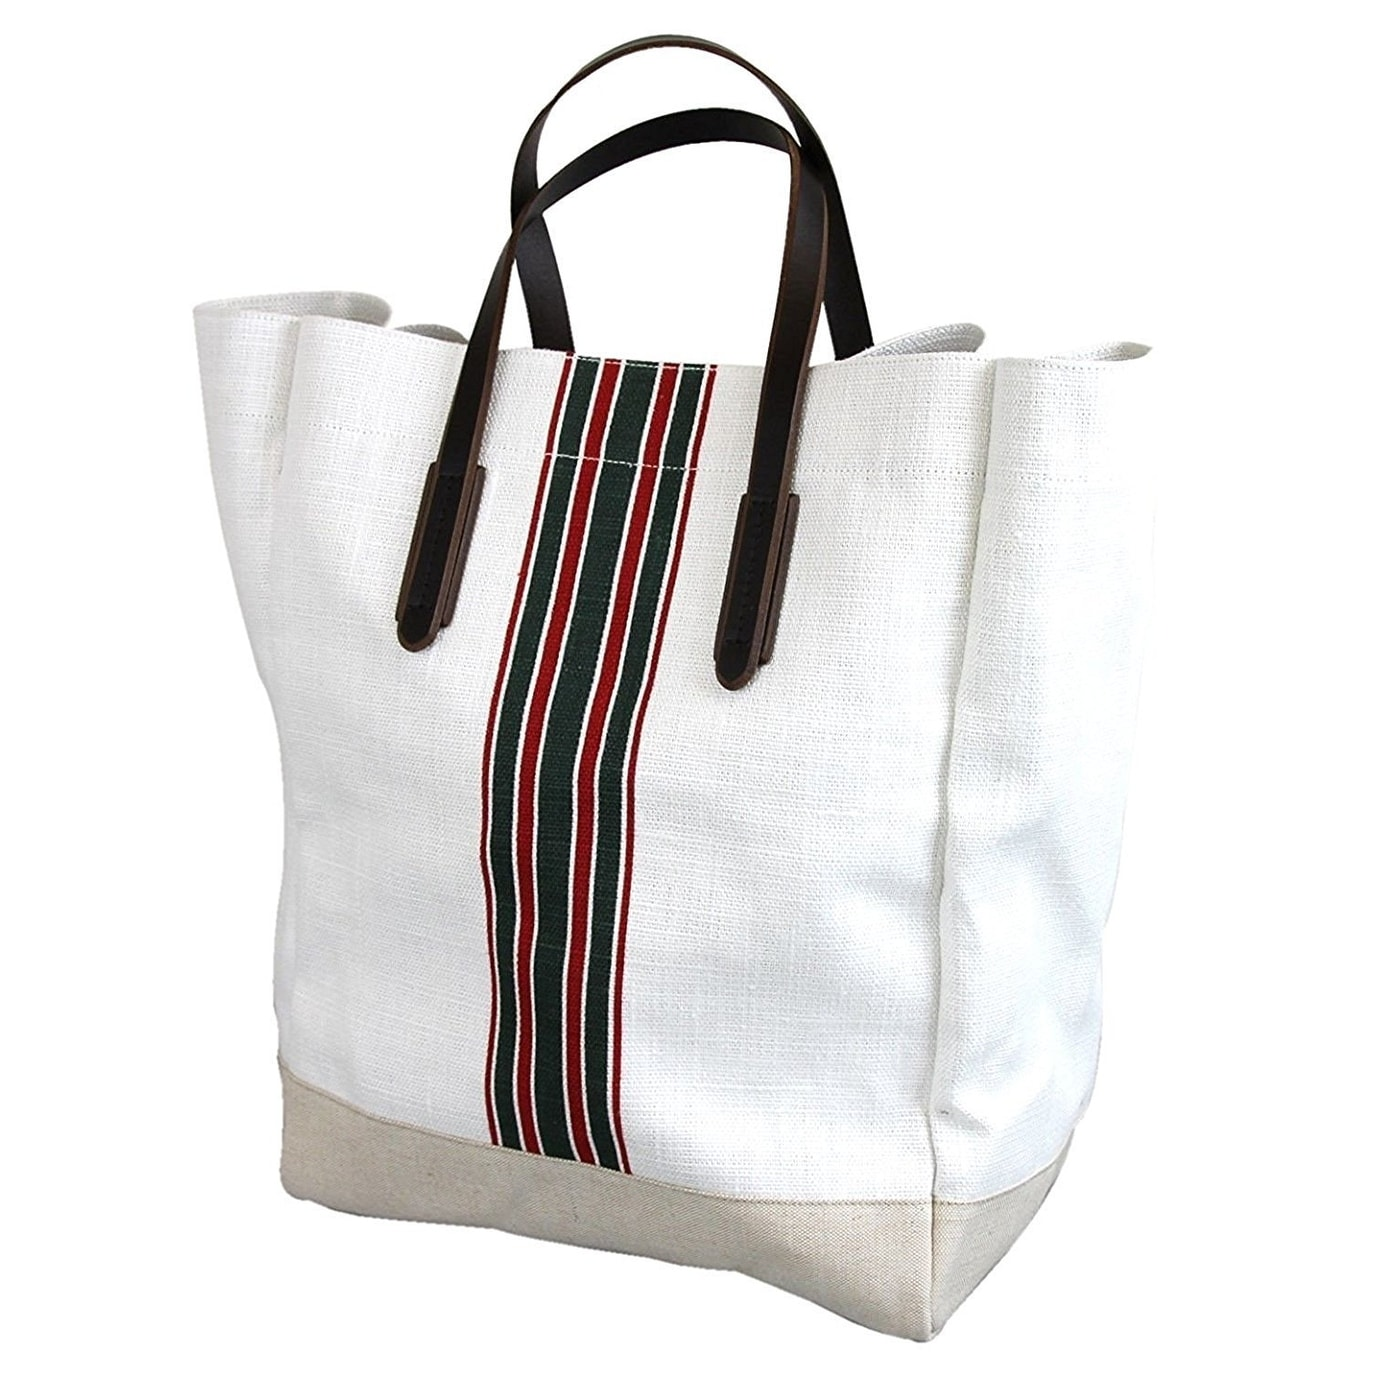 911c70480 Shop Gucci Men's White Canvas Large Web Tall Tote Bag 308836 - Free  Shipping Today - Overstock - 27603183